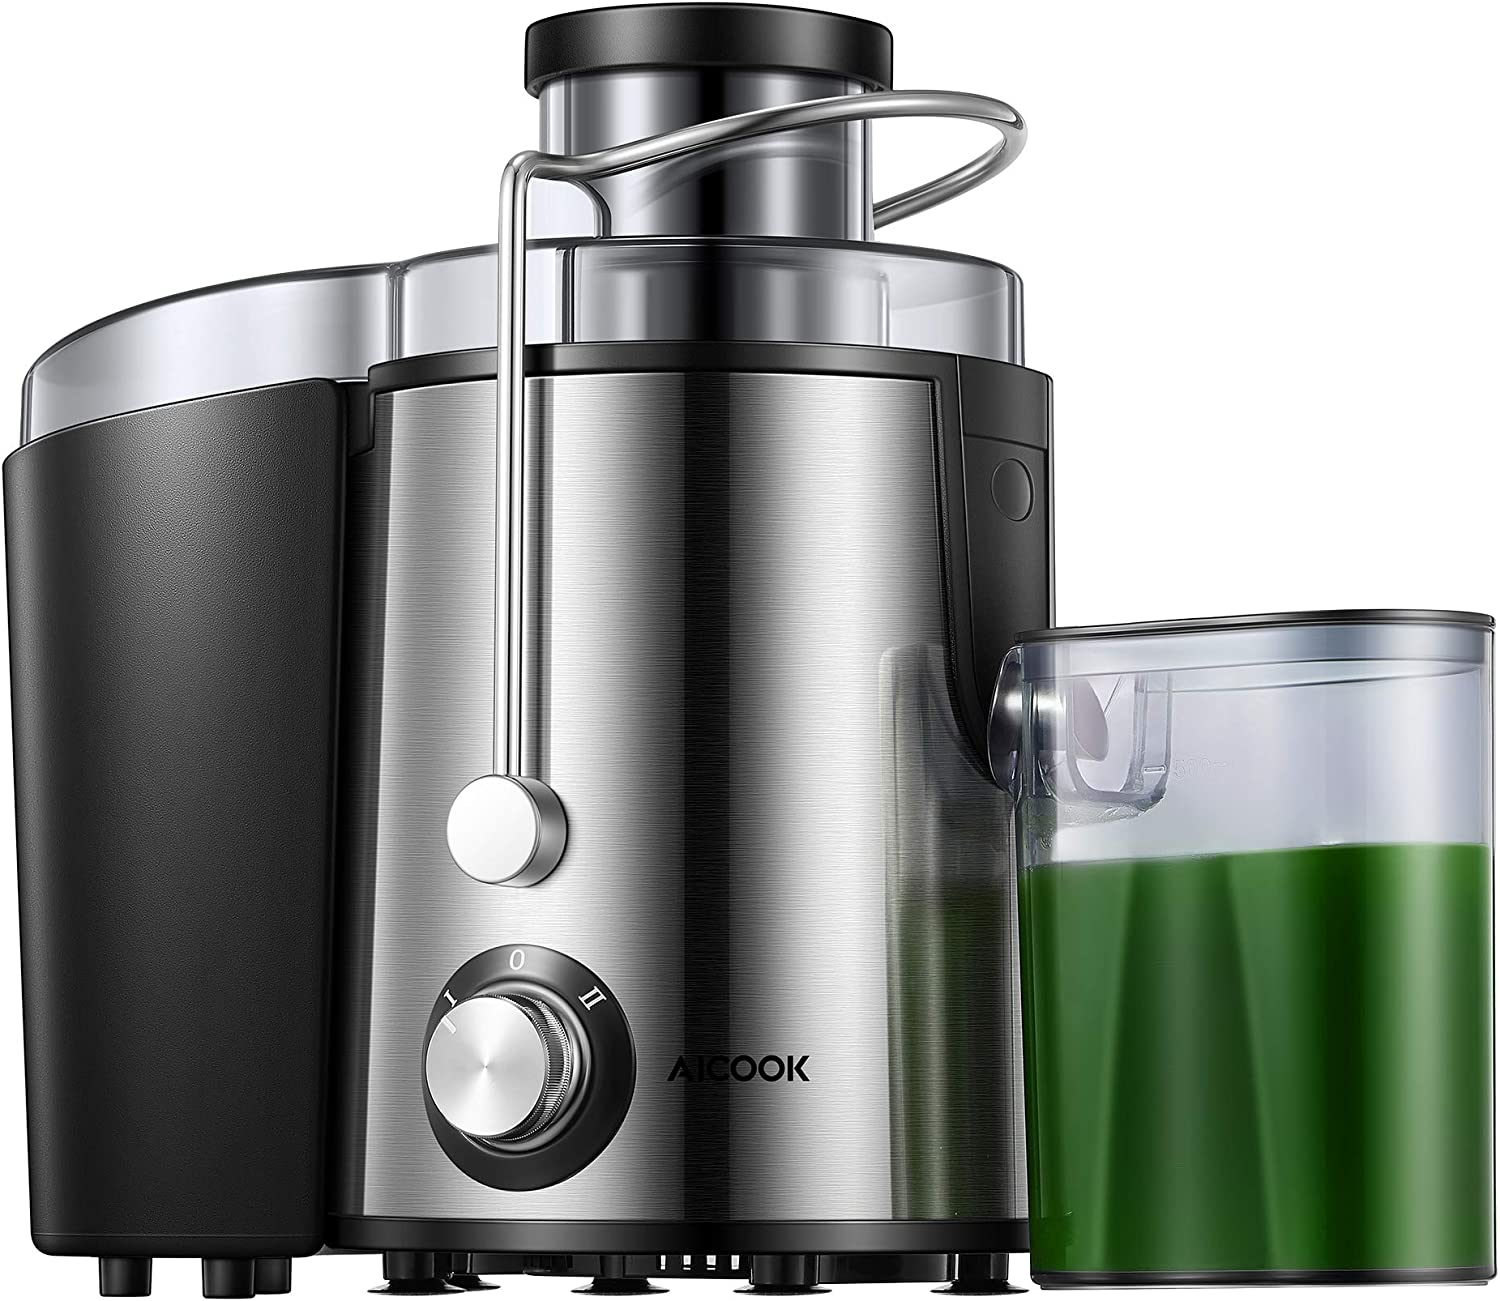 """Juicer,Centrifugal Juicer with 2 Speeds,Easy to Clean Wide 3"""" Large Feed Chute for Fruit Vegetable, Anti-drip, High Quality Aicook Centrifugal Juicer"""